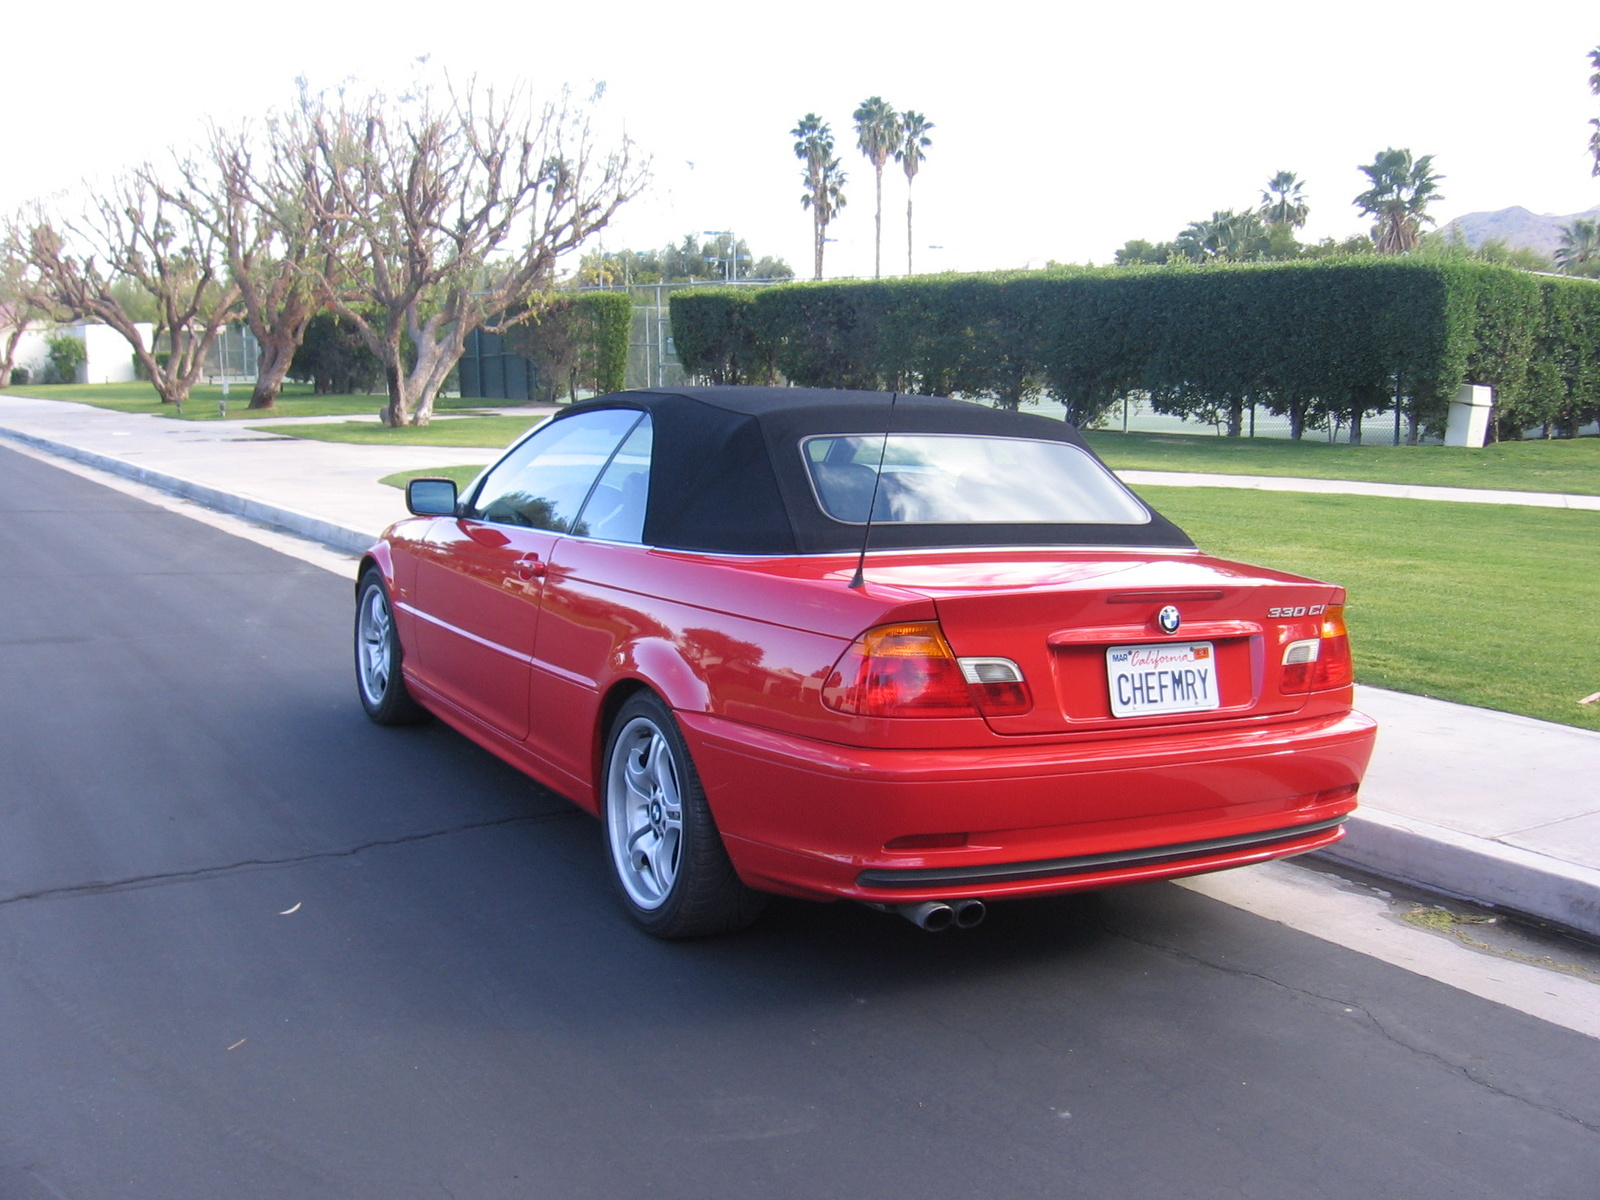 BMW 3 series 330Ci 2001 photo - 6